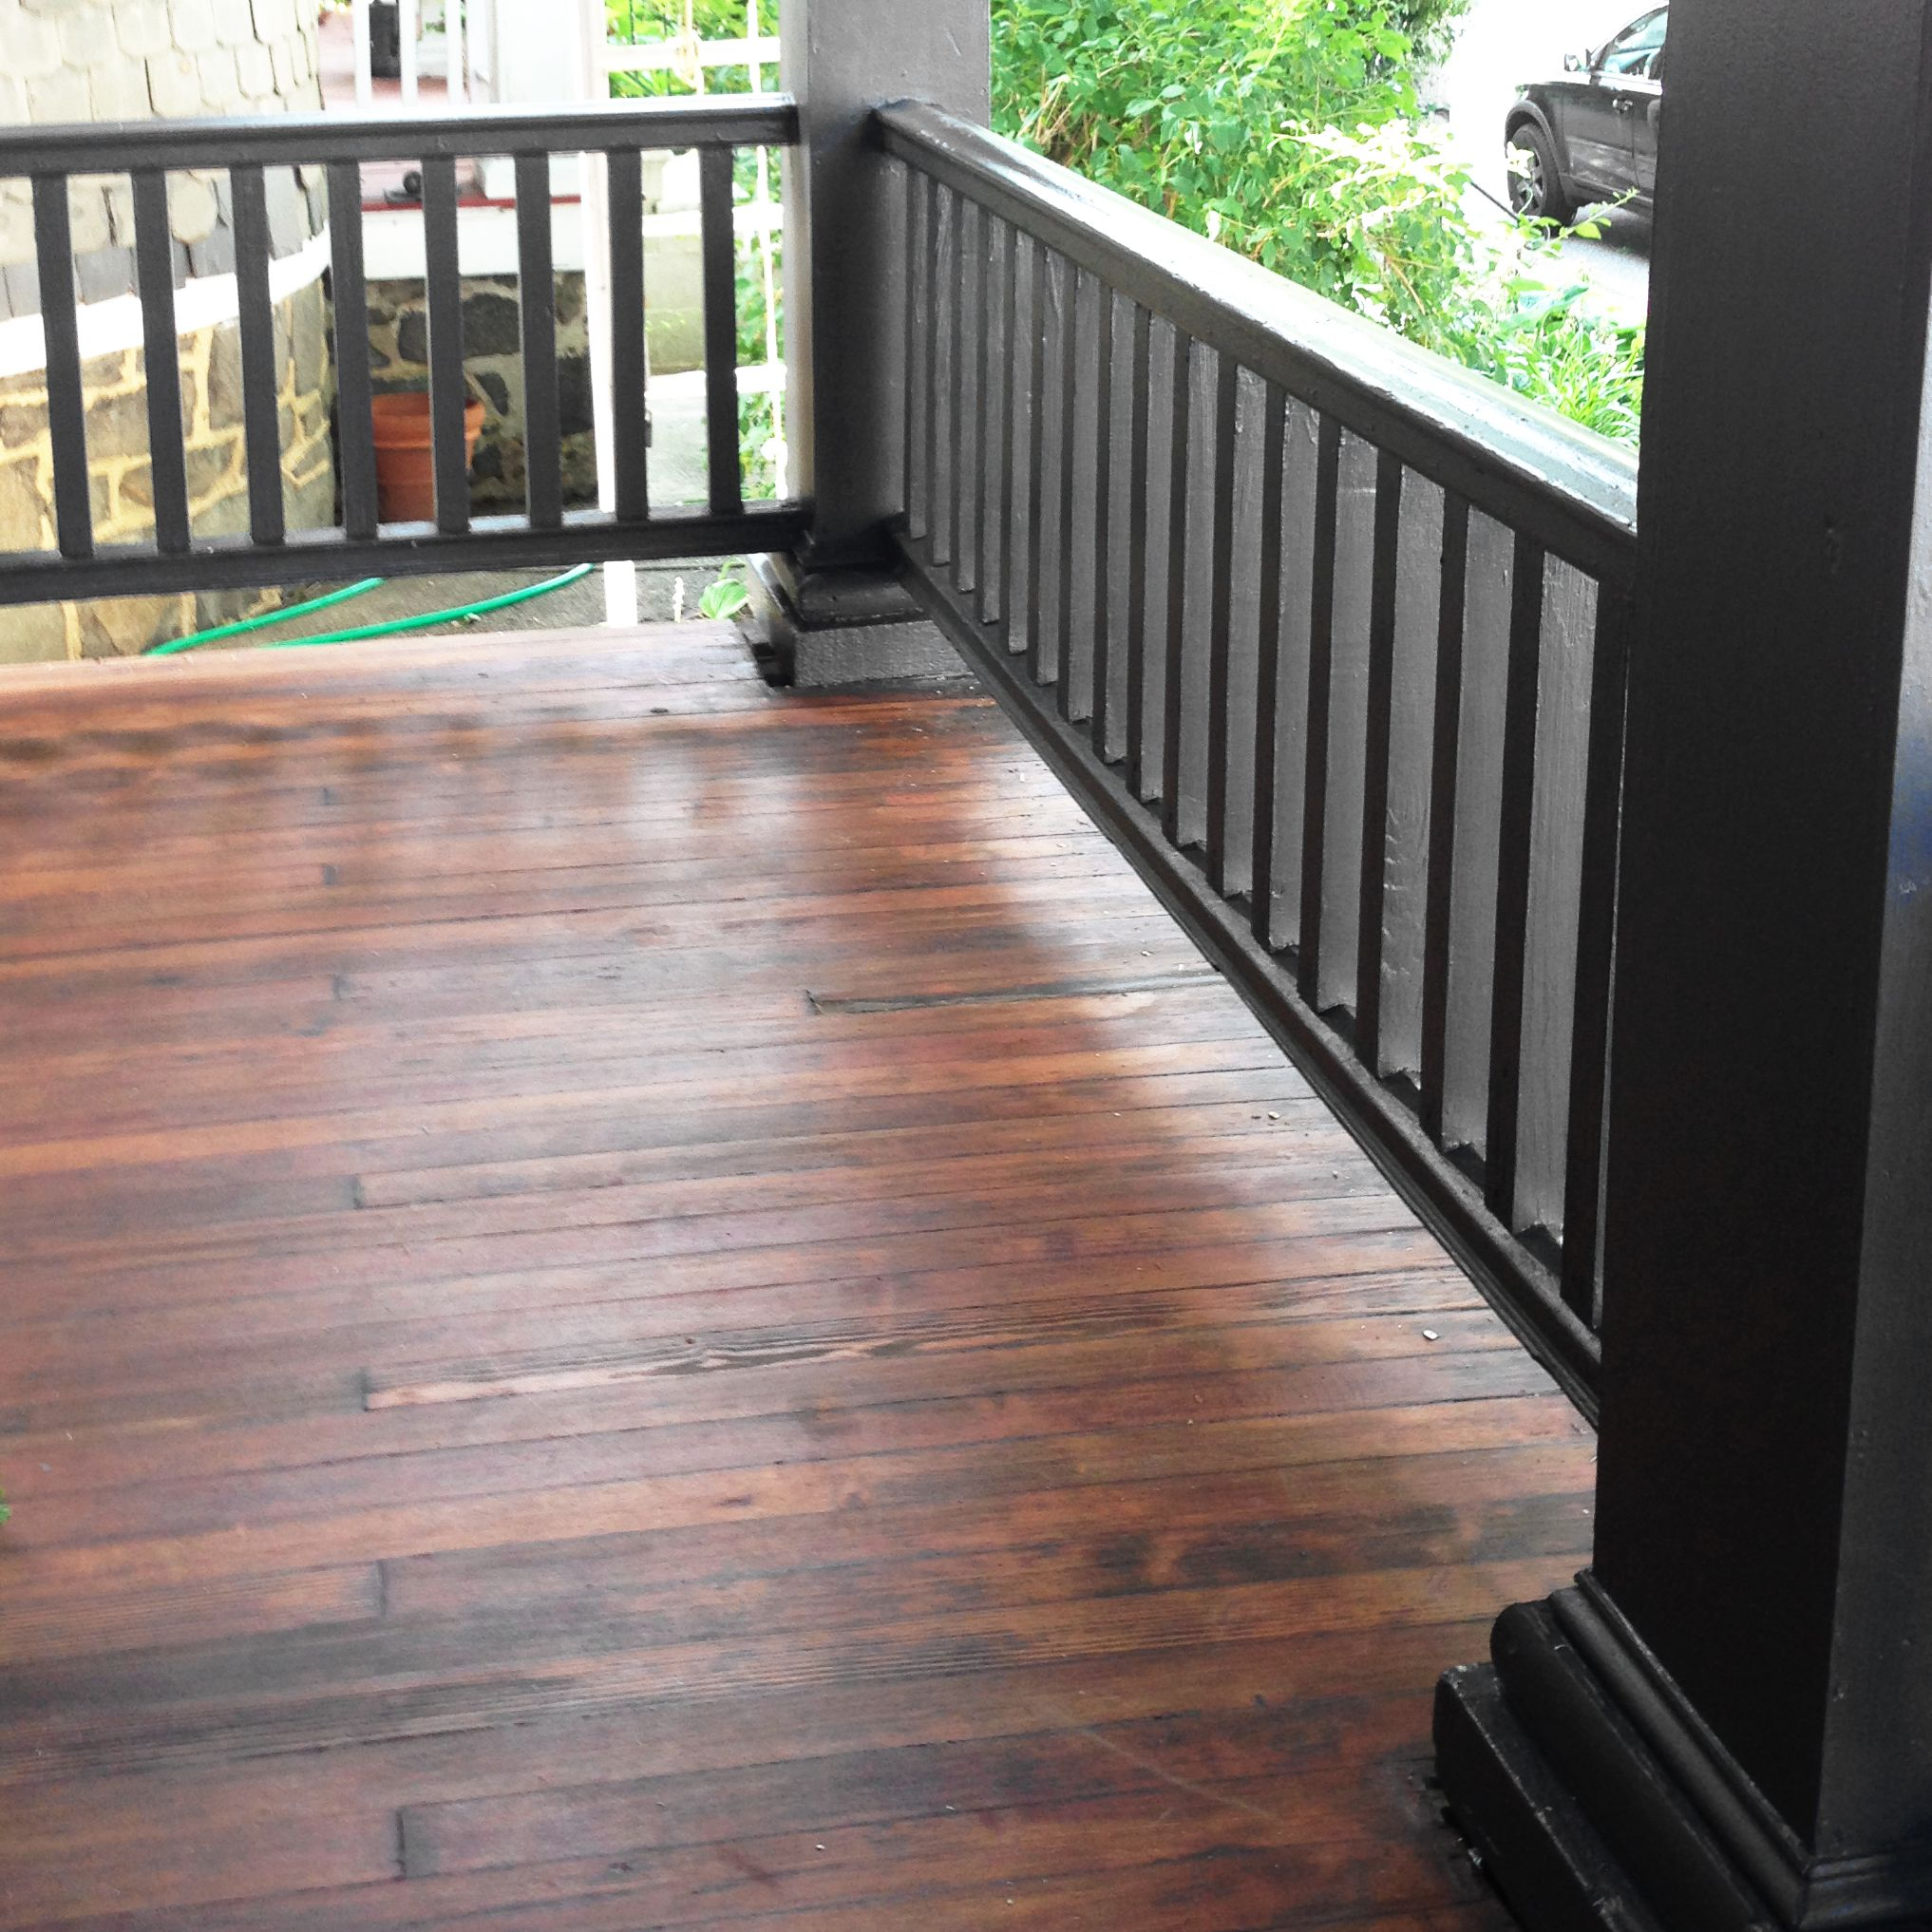 Painting Decorating Wirral Before After Resurfacing: Painting Wood Porch Floor Creative Diy Remove Paint Amp